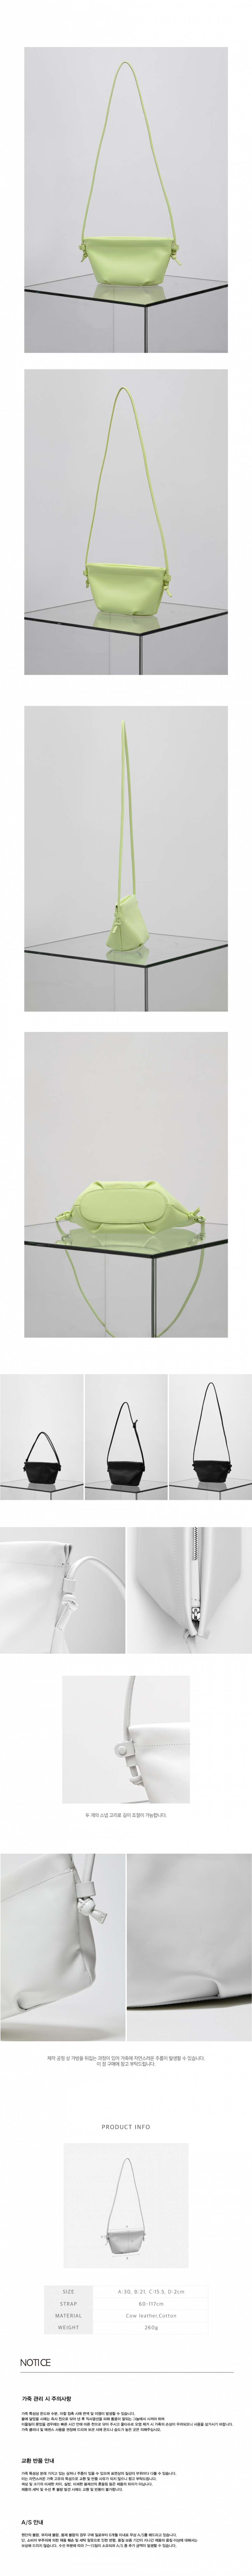 페넥(FENNEC) BOAT BAG - LIME